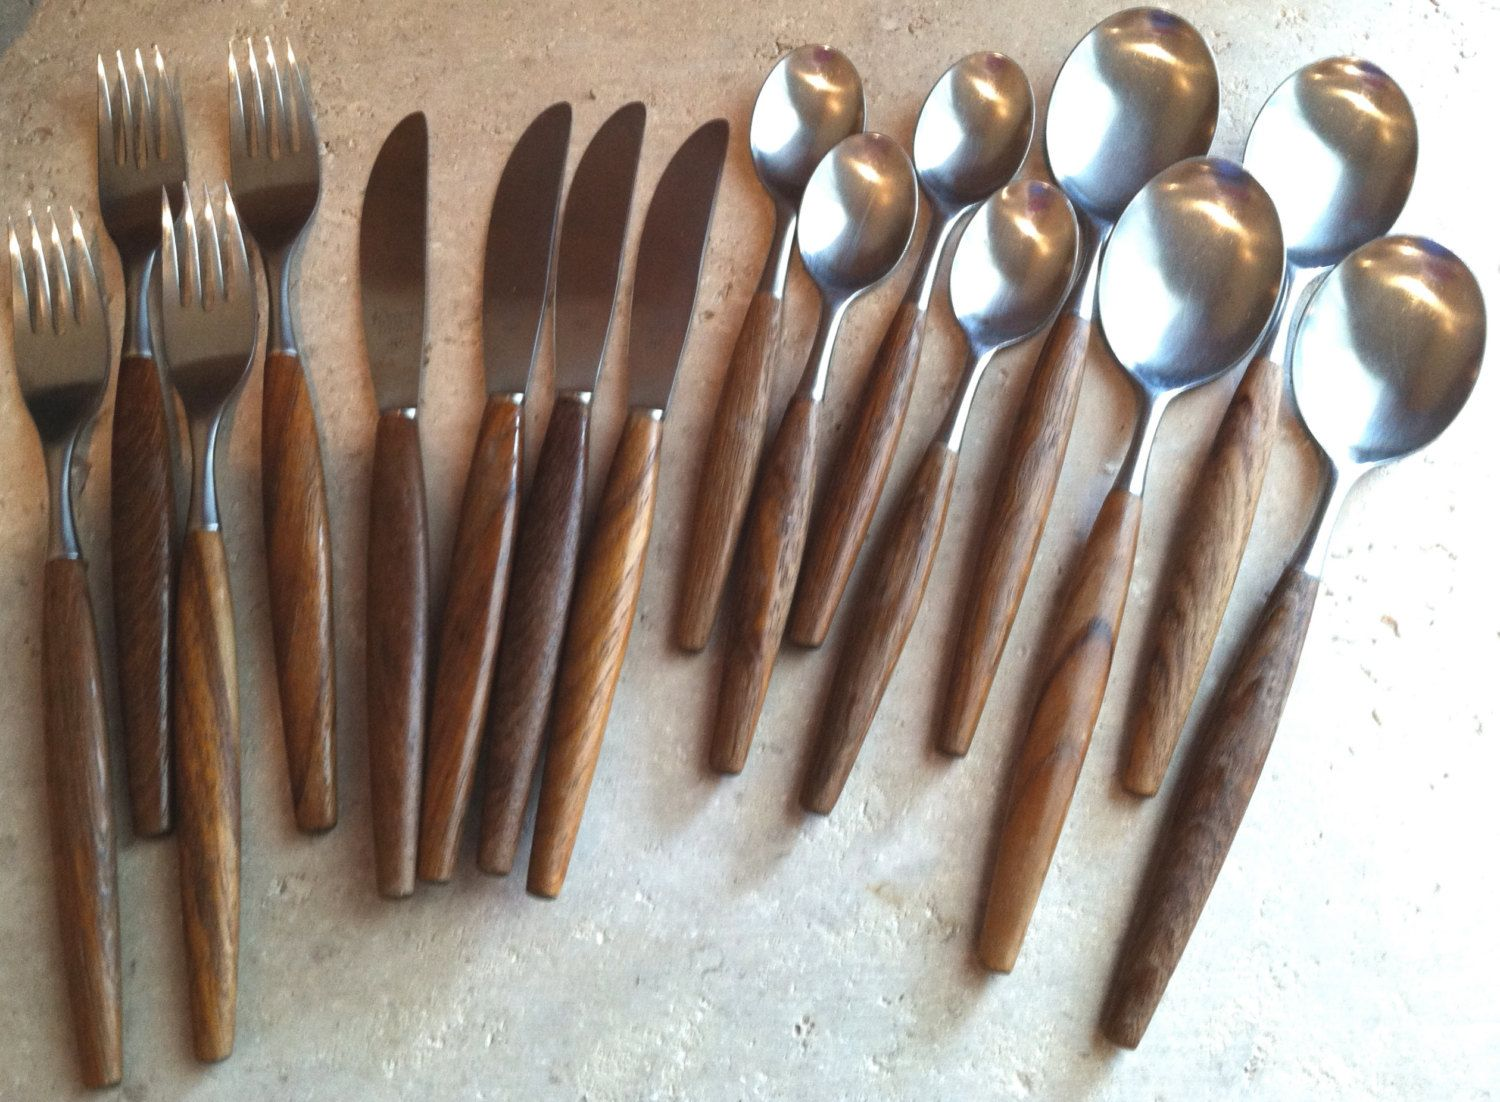 Contemporary Stainless Steel Flatware Ed Wusthof Solingen Rostfrei Germany Teak Mid Century